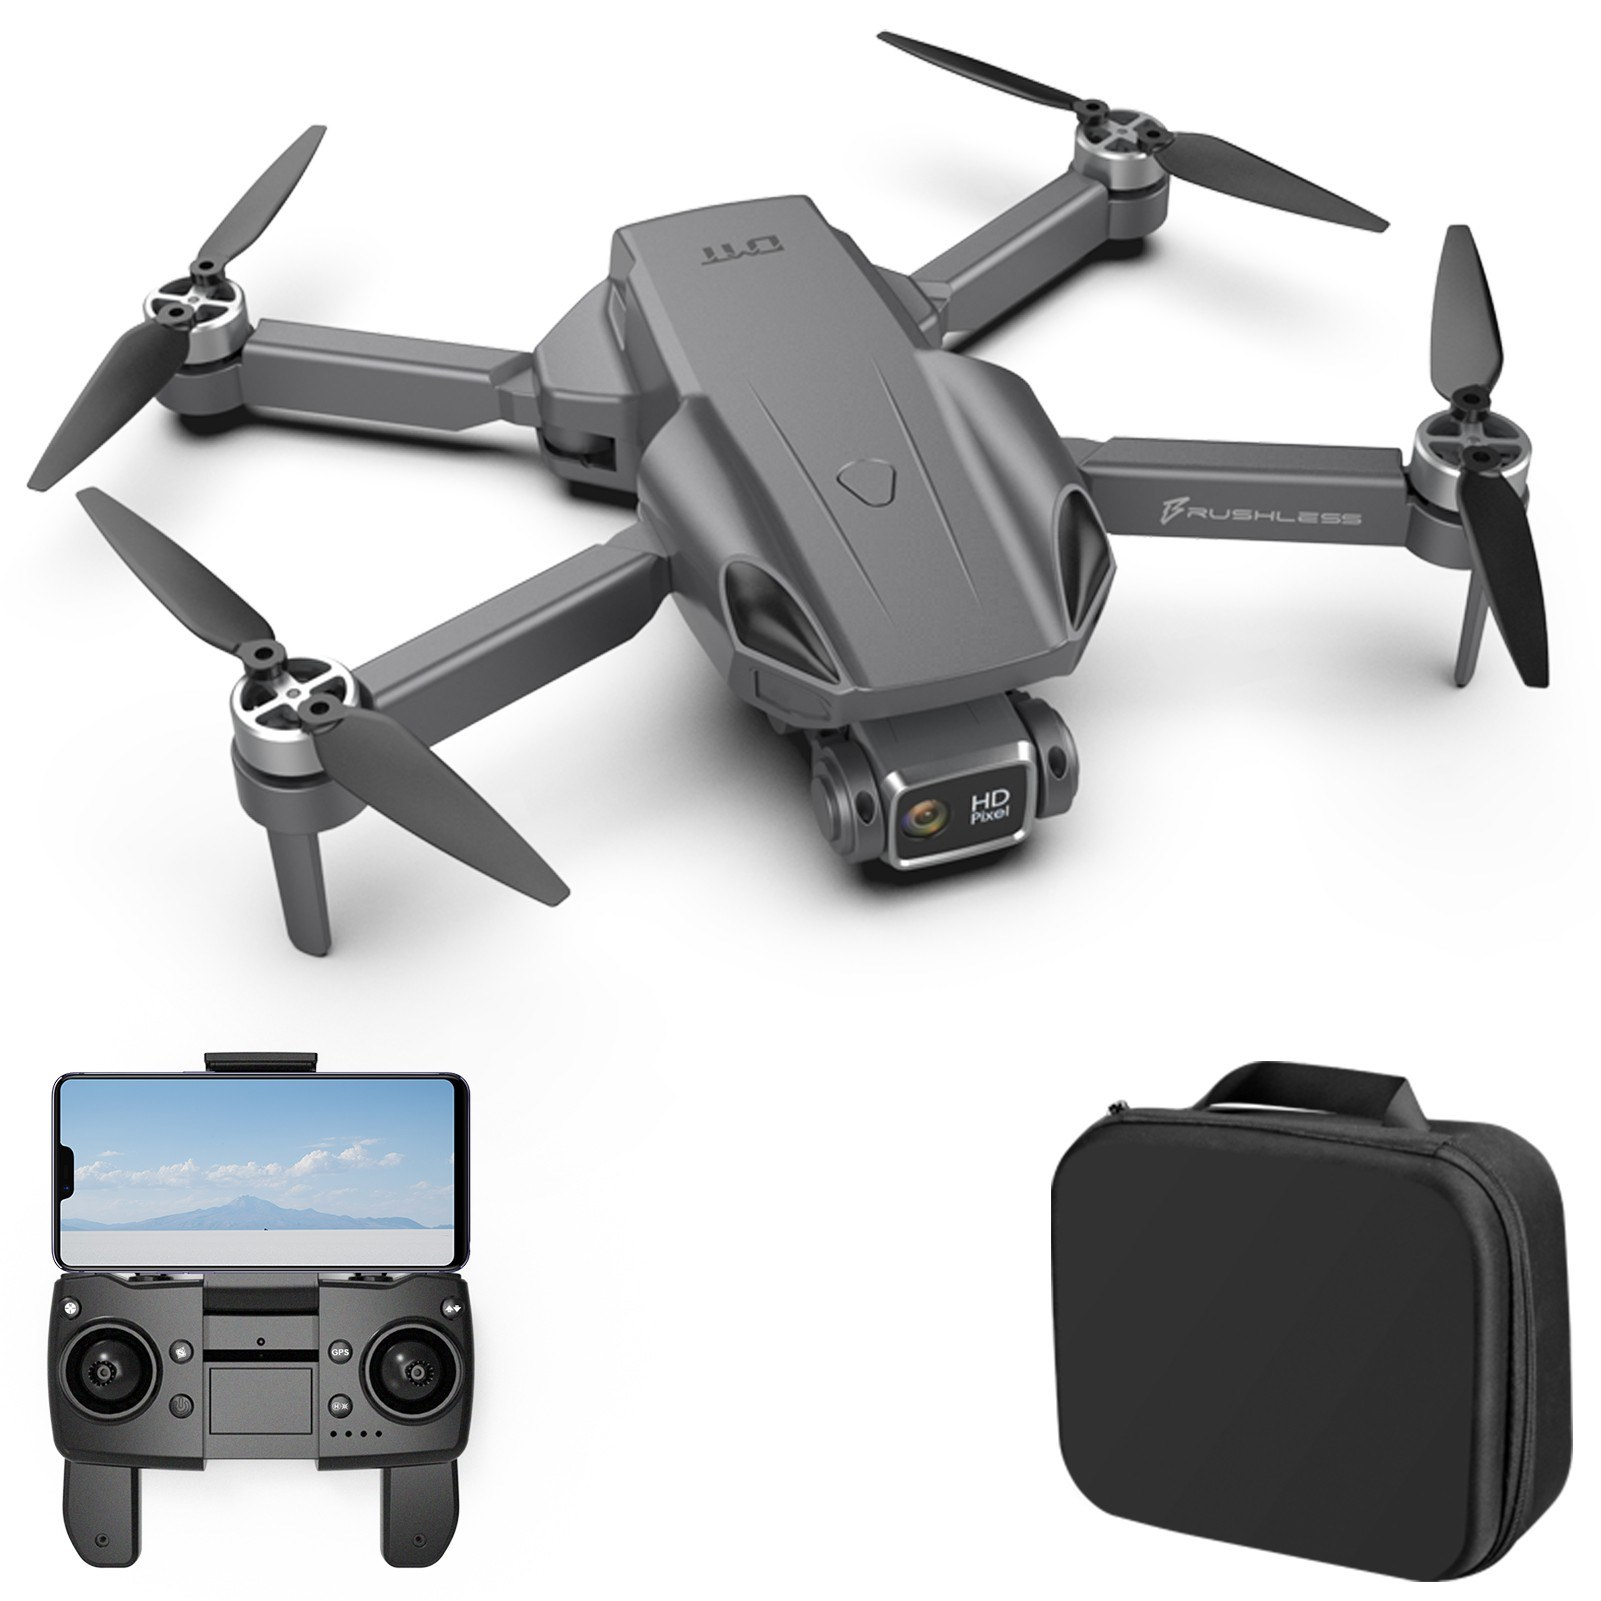 tomtop.com - 31% OFF H9 MAX 5G Wifi GPS FPV 4K Camera RC Drone, Free Shipping $96.99